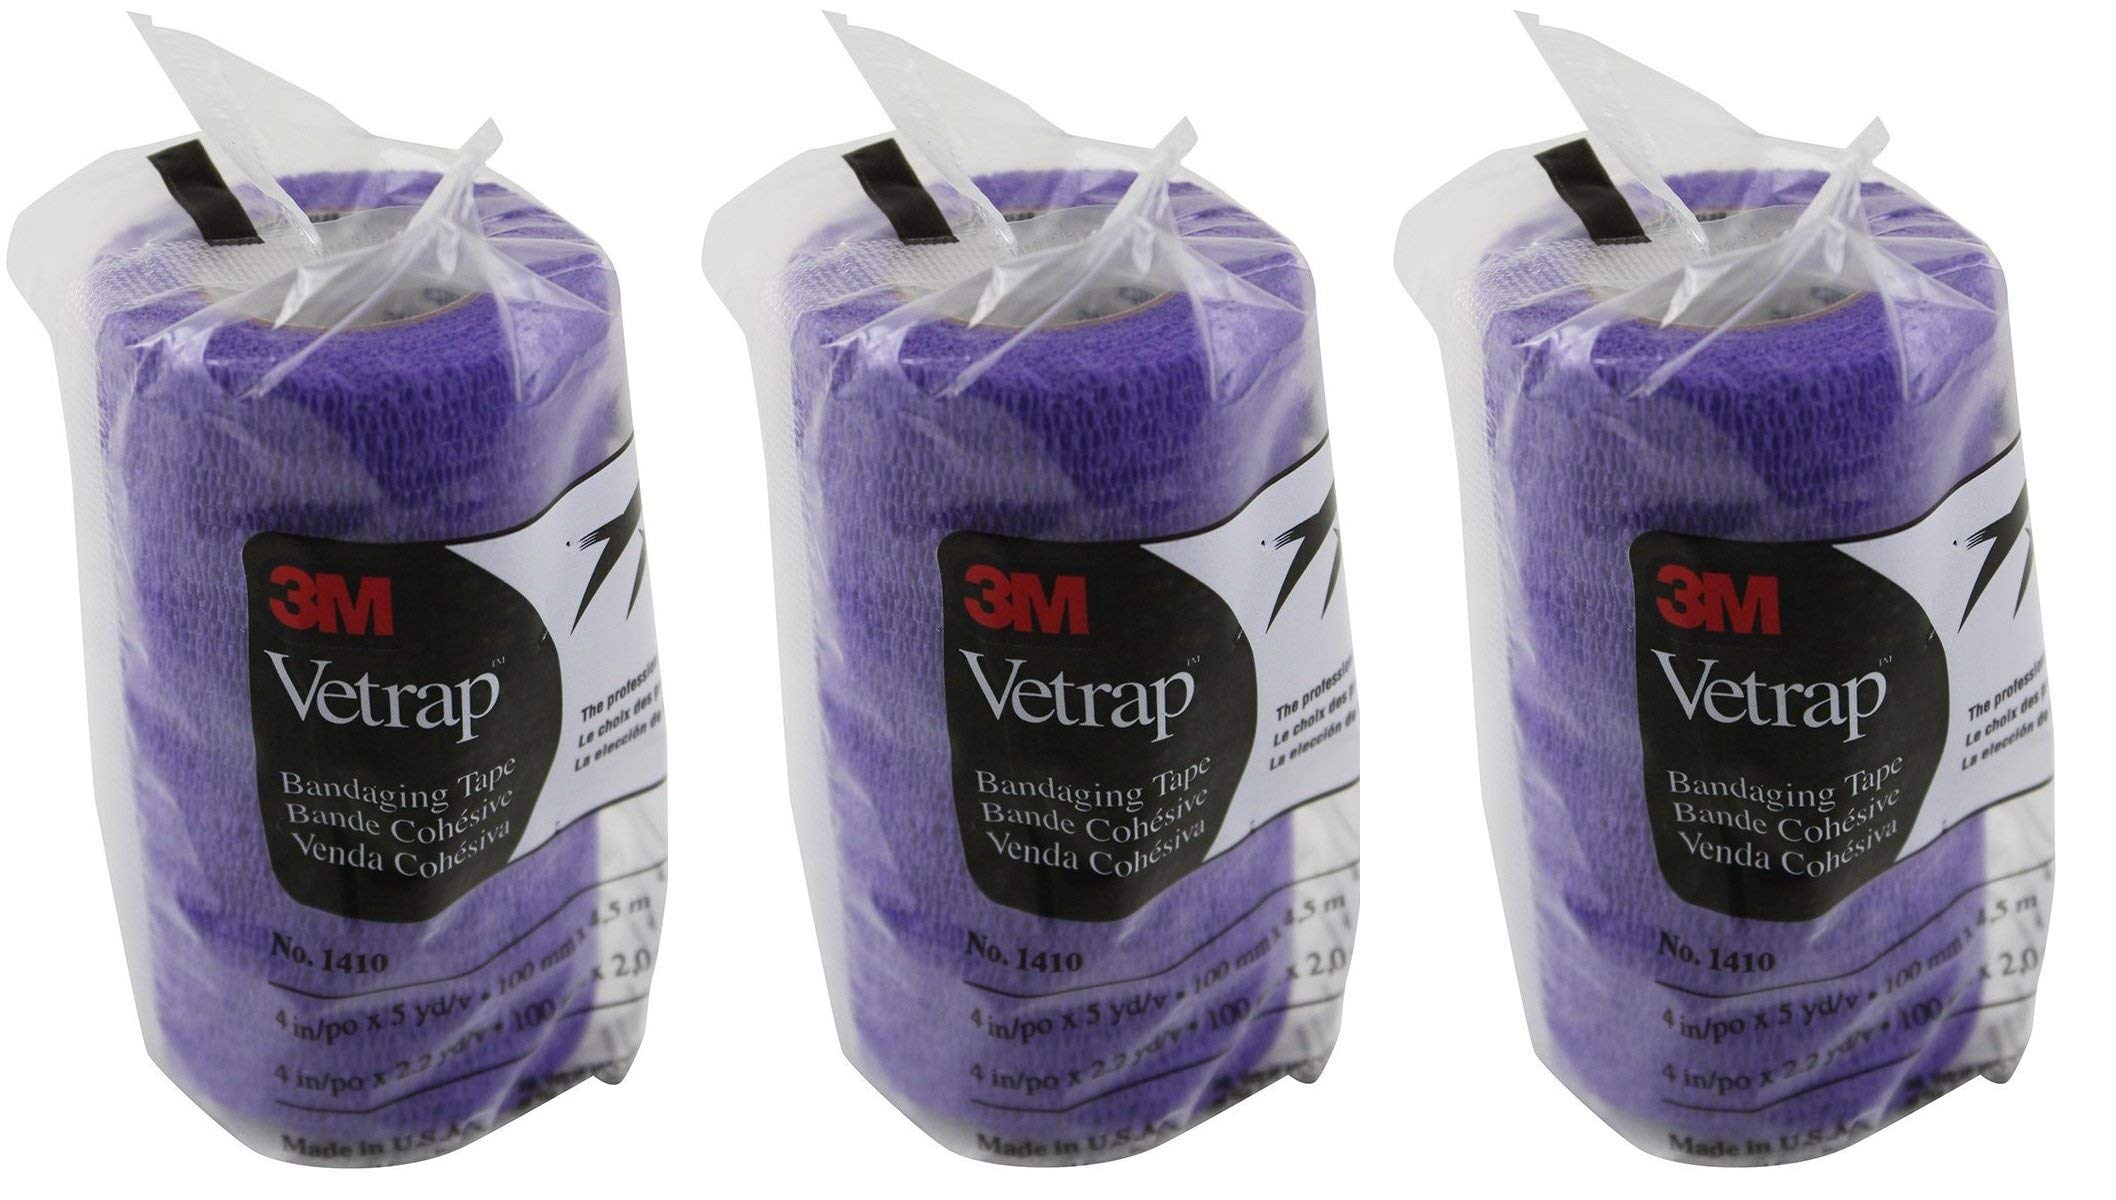 3M Vetrap 4'' Bold Color High Performance Animal Bandaging Tape, 4'' x 5 Yards - Purple (Pack of 3) by 3M